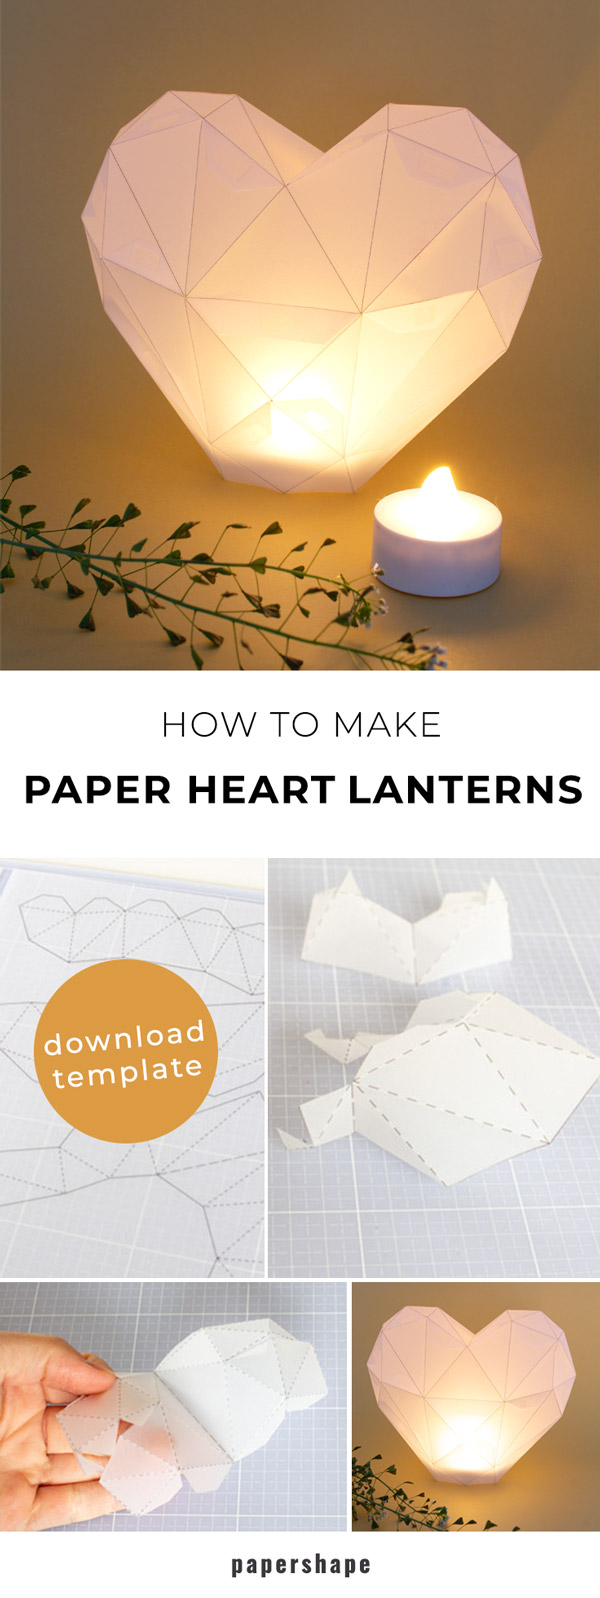 DIY heart lantern as a centerpiece for the wedding table #papercraft #weddinglantern #diy